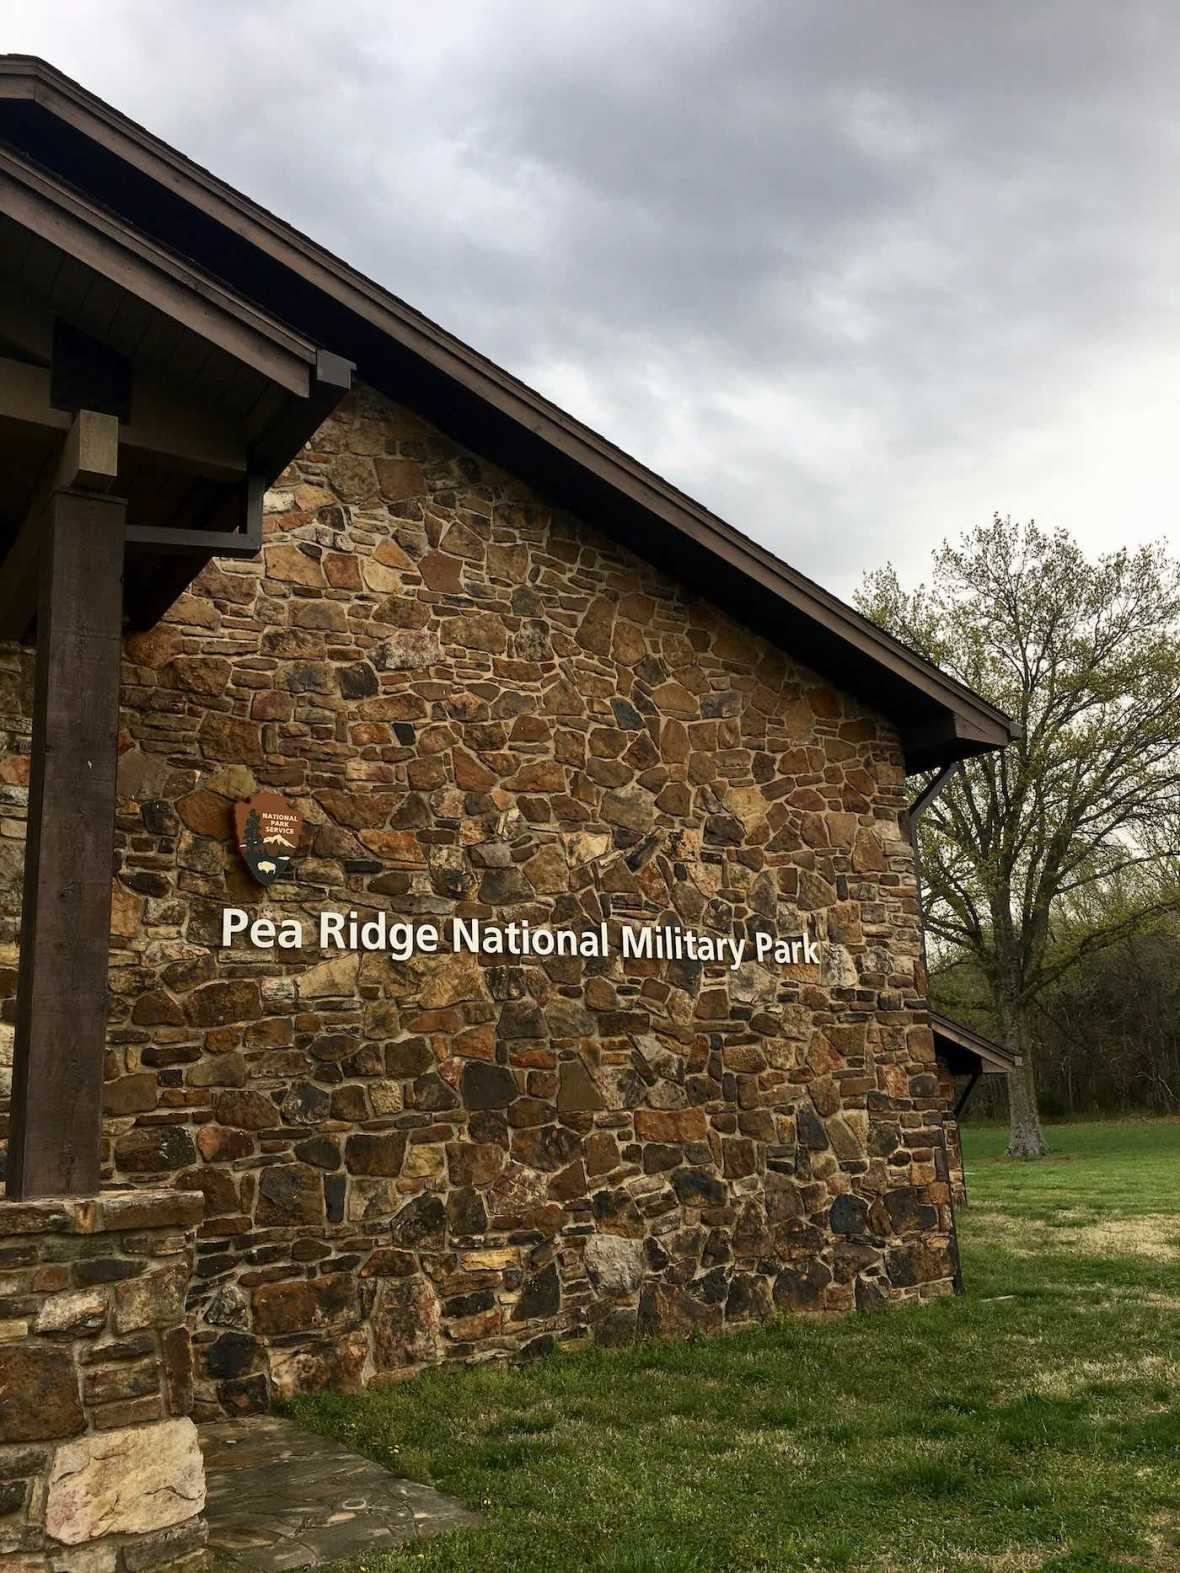 Pea Ridge National Military Park in Arkansas